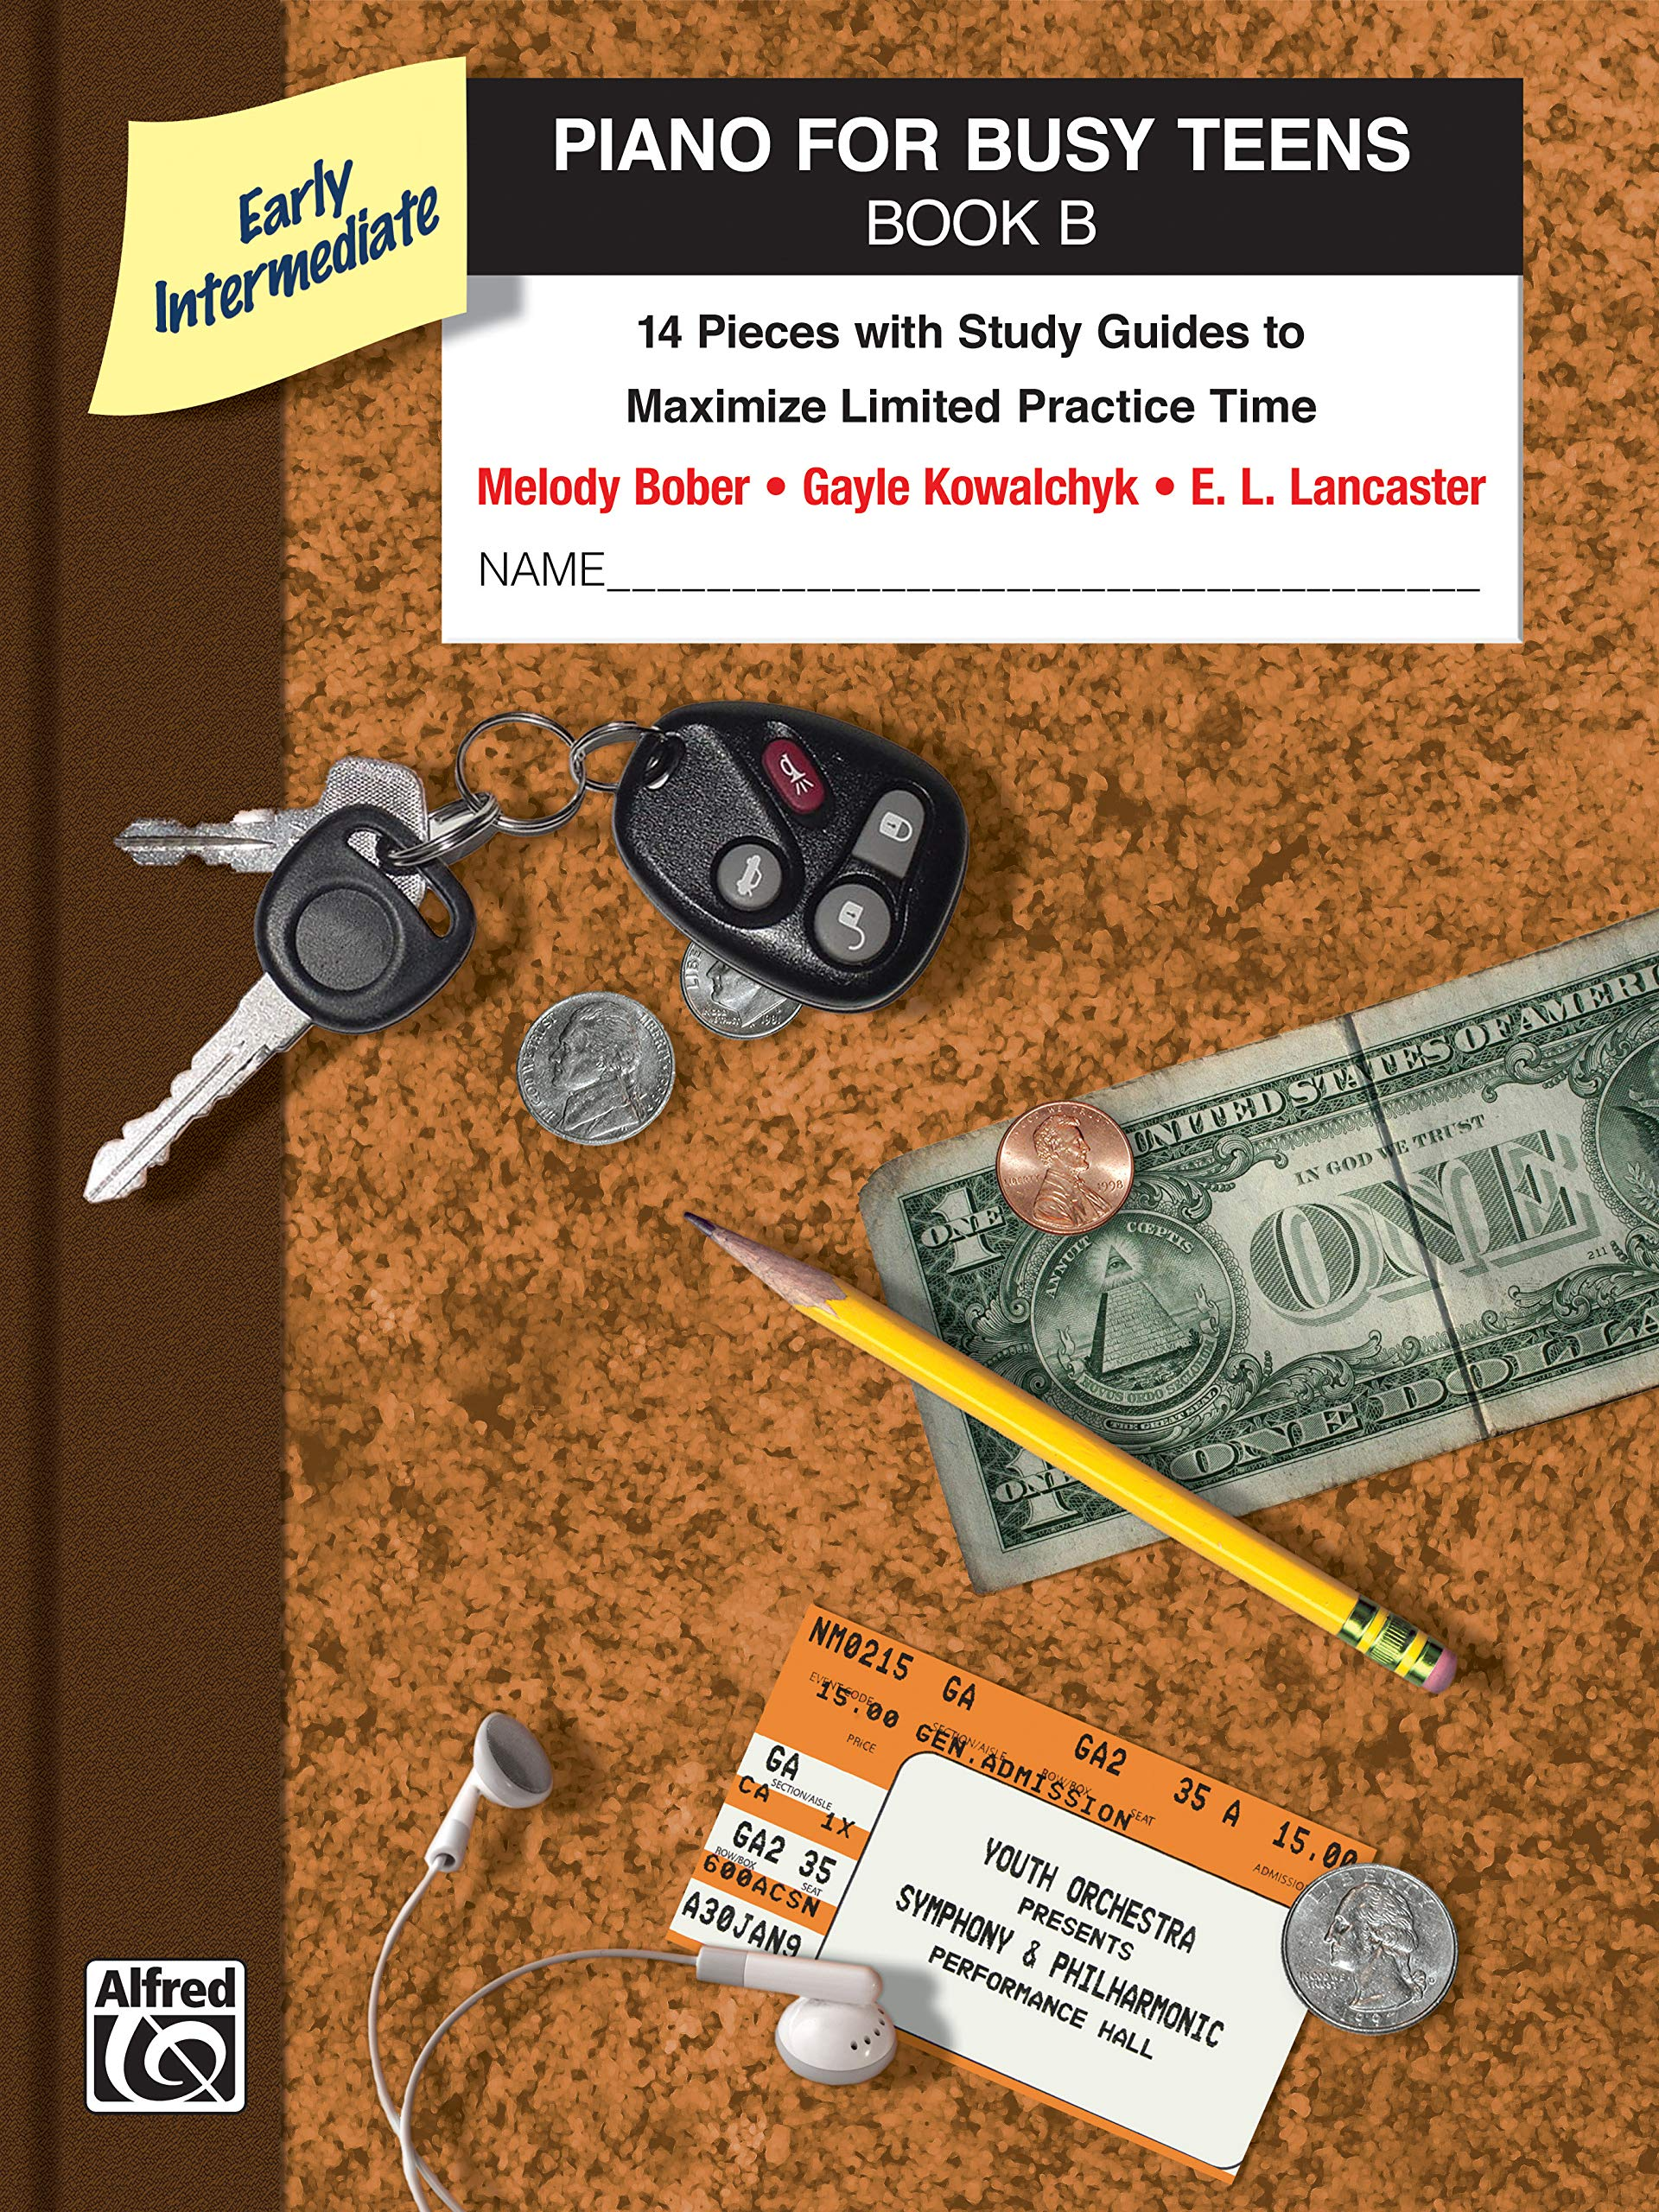 Piano for Busy Teens, Bk B: 12 Pieces with Study Guides to Maximize Limited Practice Time (BK 2)